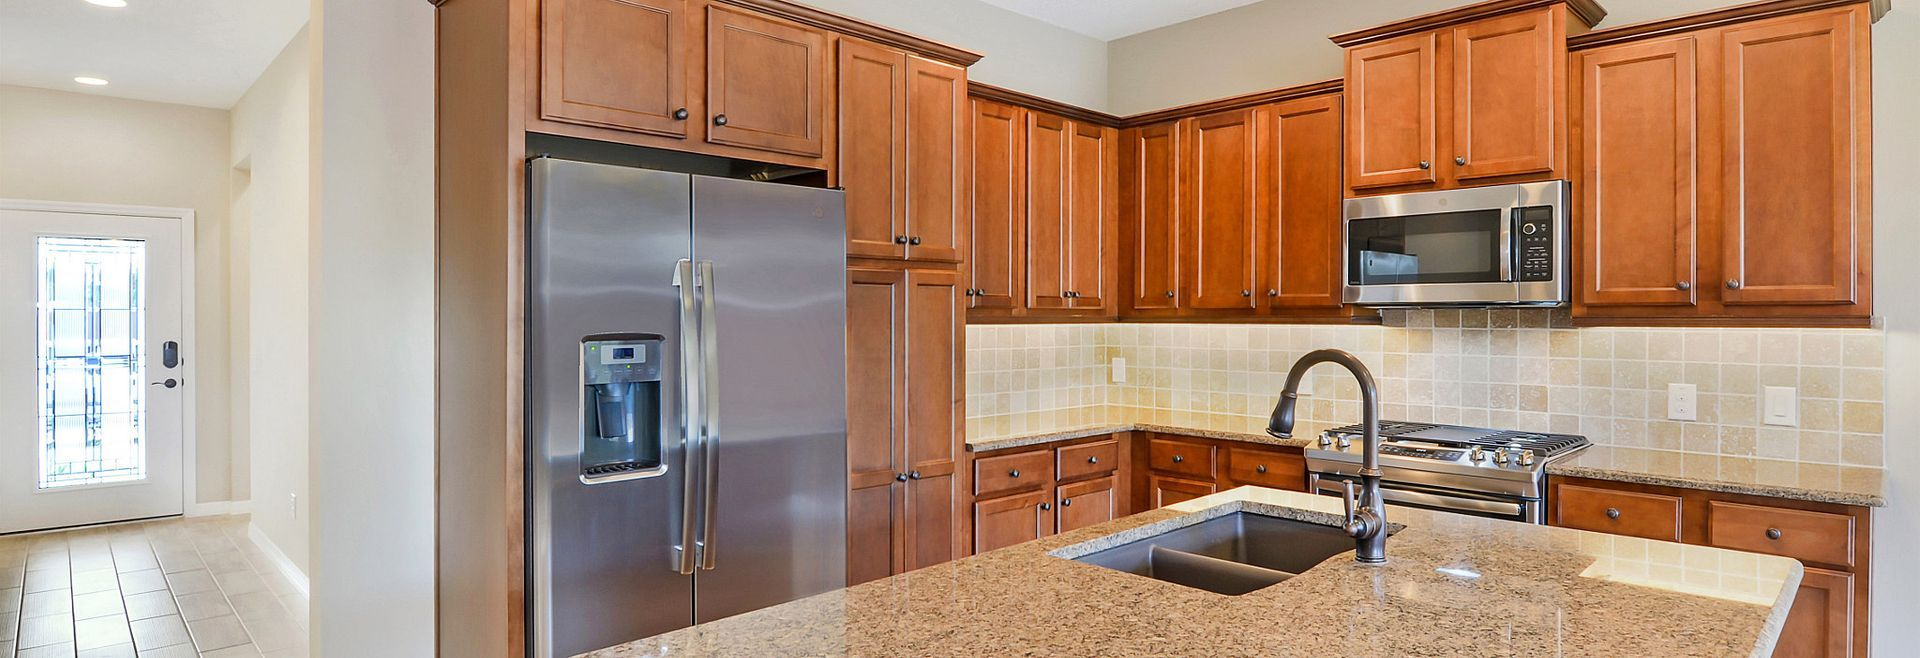 Kitchen featured in the Aria By Shea Homes - Trilogy in Ocala, FL